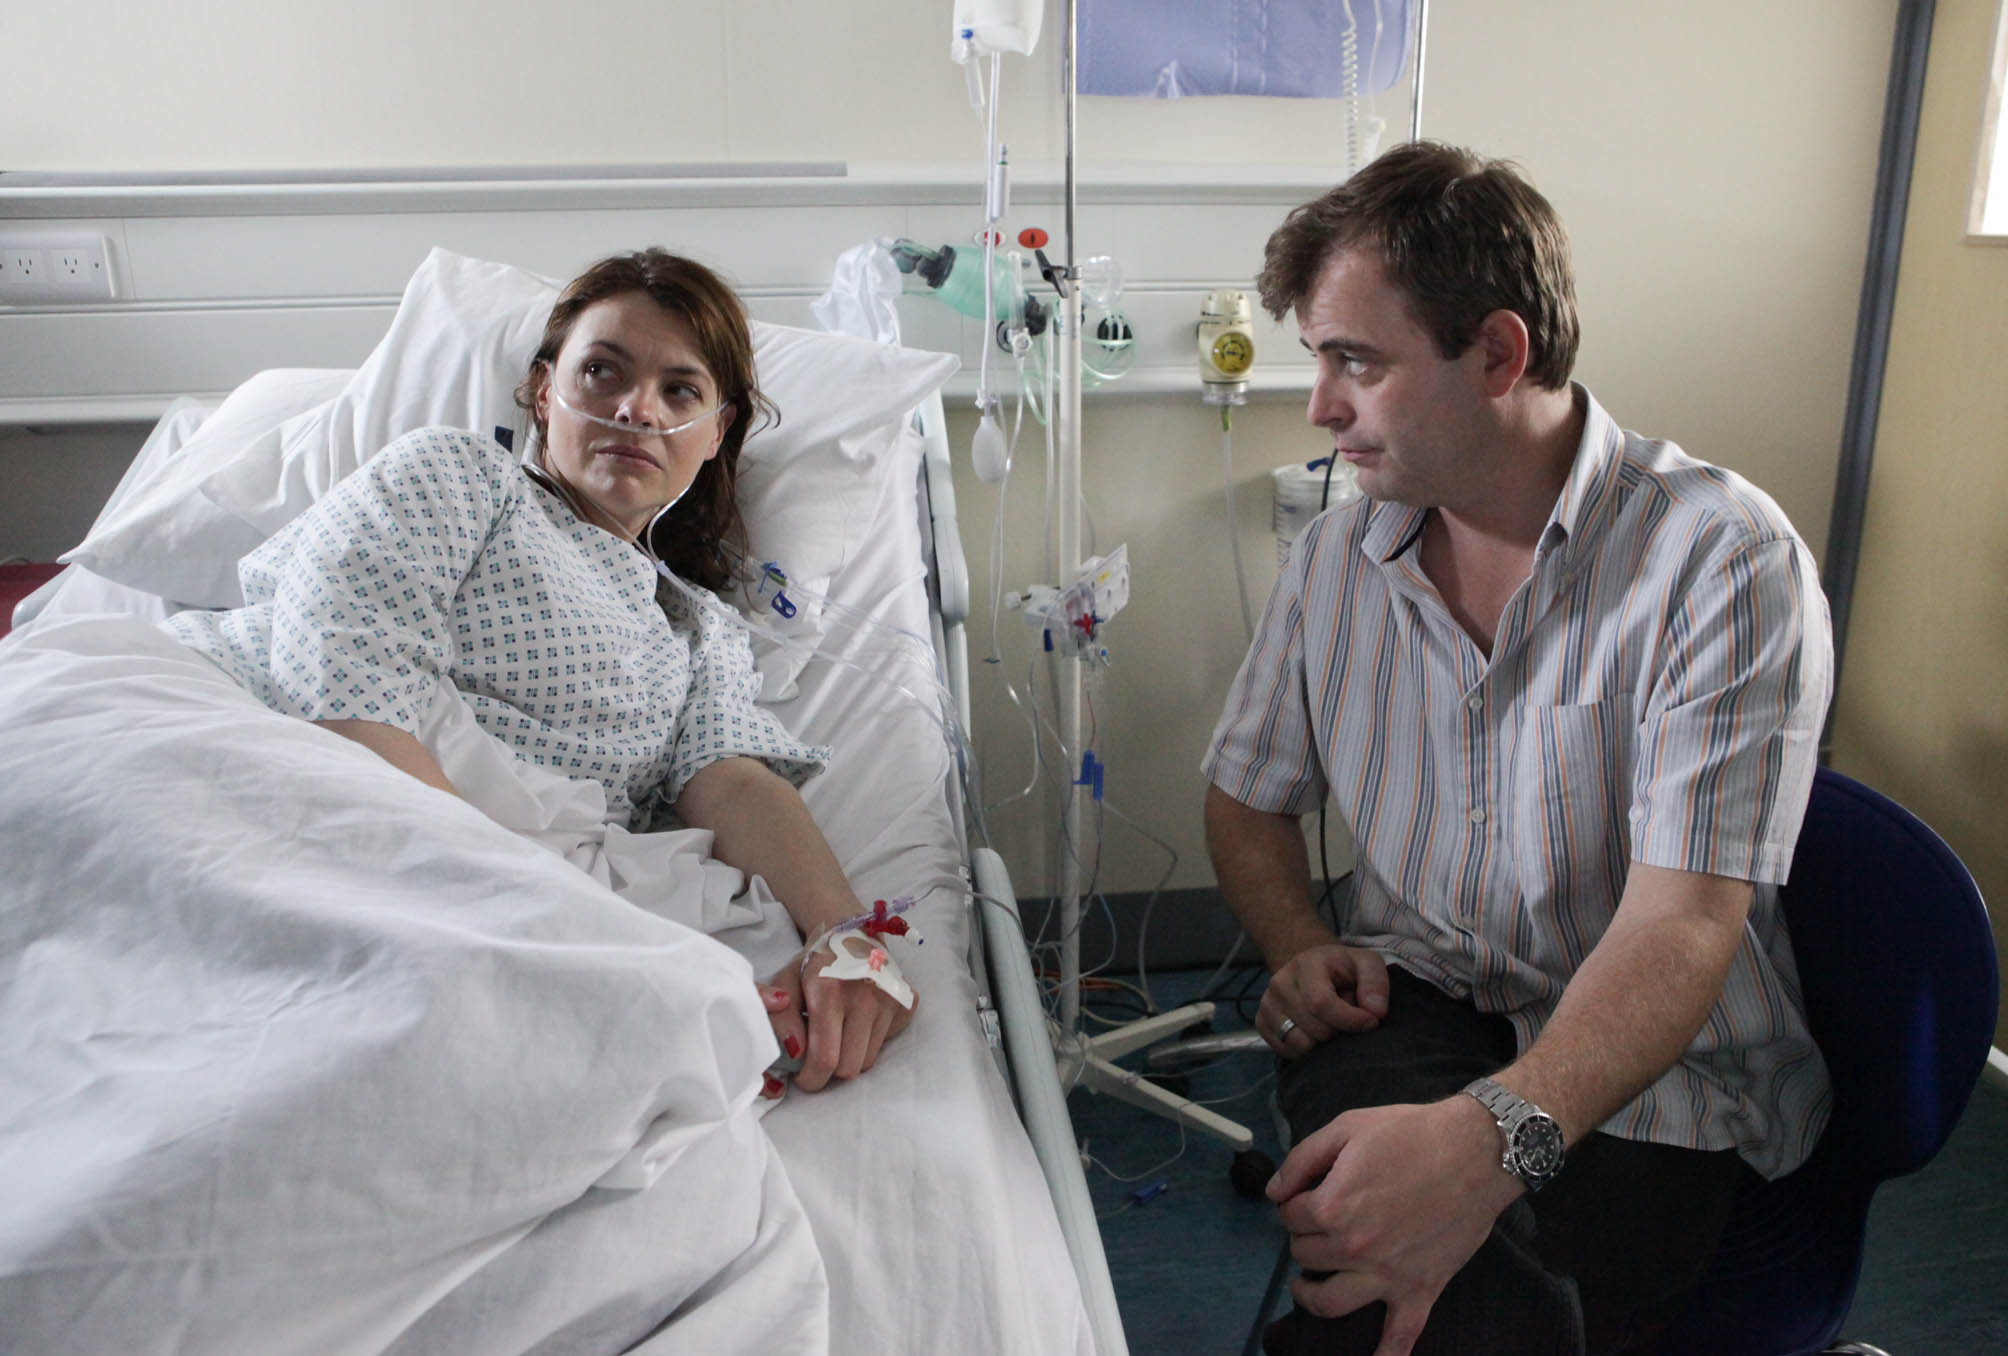 Mandatory Credit: Photo by ITV/REX/Shutterstock (3529637oq) Coronation Street - Ep 7932 Monday 13 August 2012 - 8.30pm Tracy Barlow [KATE FORD] is furious when Deirdre tells her that Steve McDonald [SIMON GREGSON] is seeing Michelle â€' she tells steve to get out. Coronation Street 2012